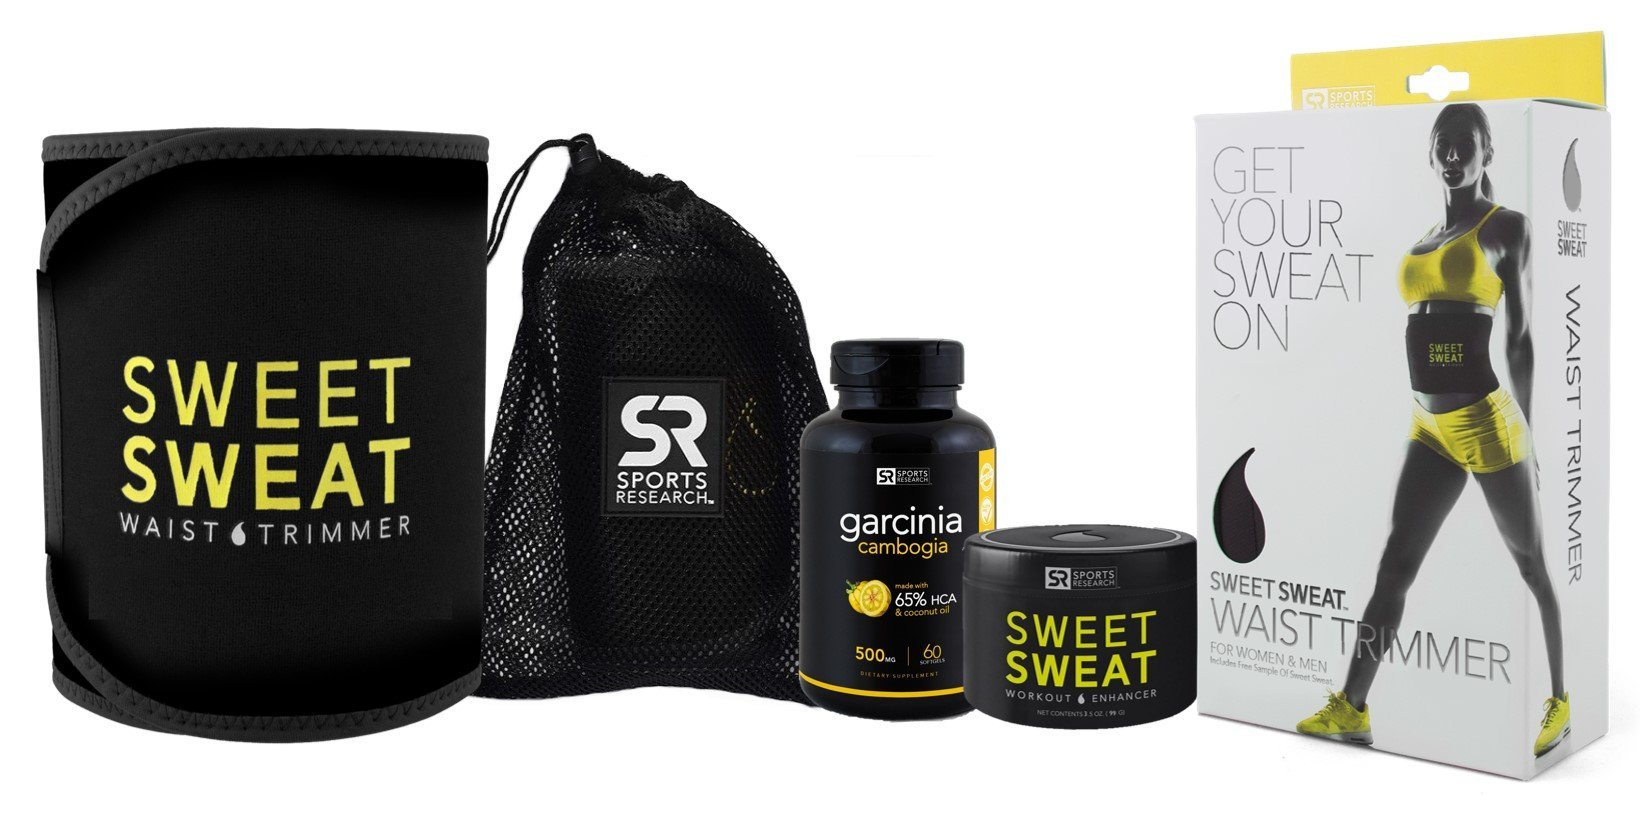 Sweet Sweat Combo Kit with 3.5 oz Jar of Workout Enhancer Cream, Size M Waist Trimming Belt and 60 ct Garcinia Cambogia Softgels + Mesh Carrying Bag by Sweet Sweat